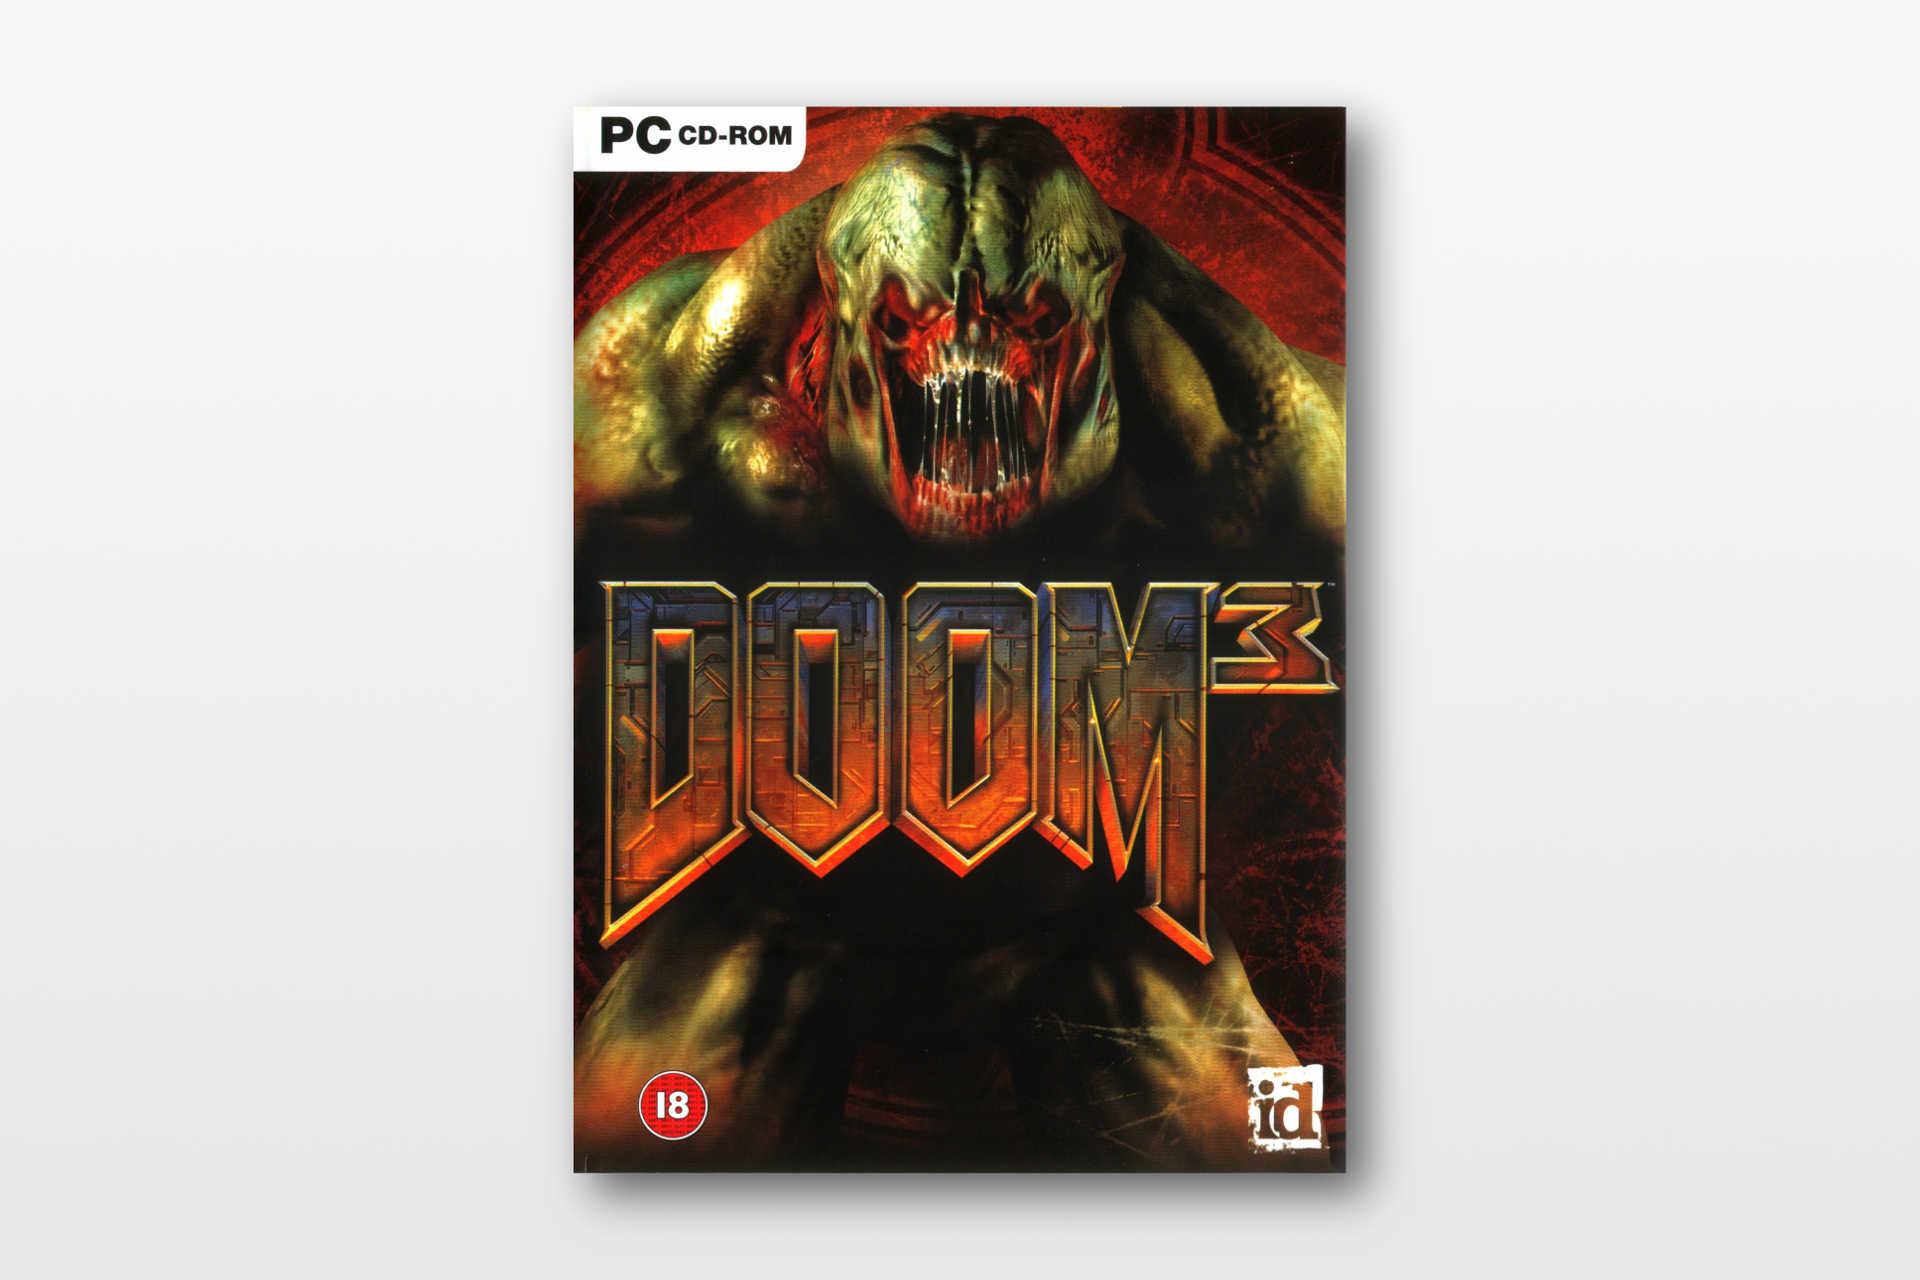 Retro gaming: Doom 3